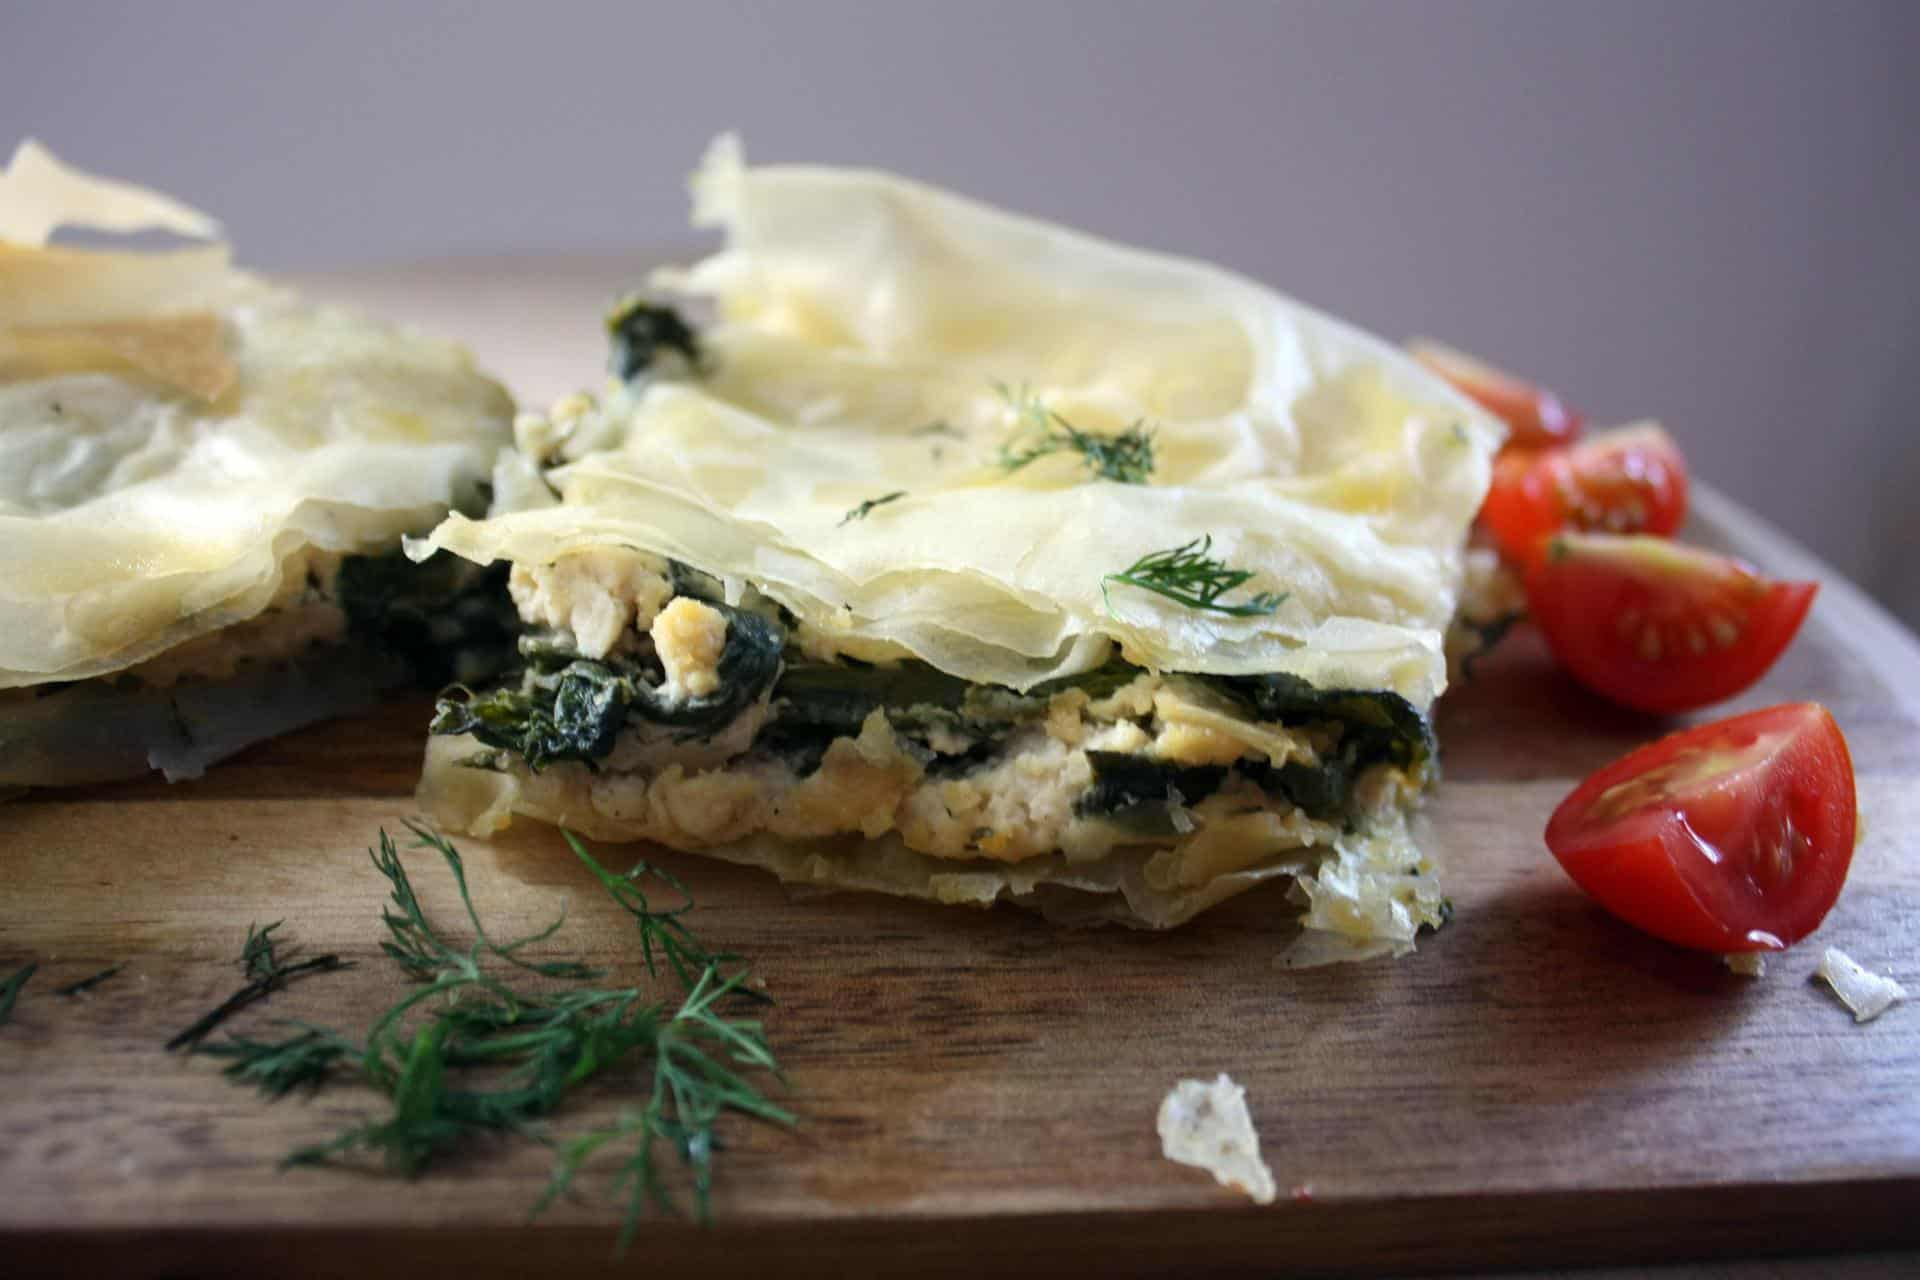 Vegan Spanakopita Greek Spinach Feta Pie The Vegan Word